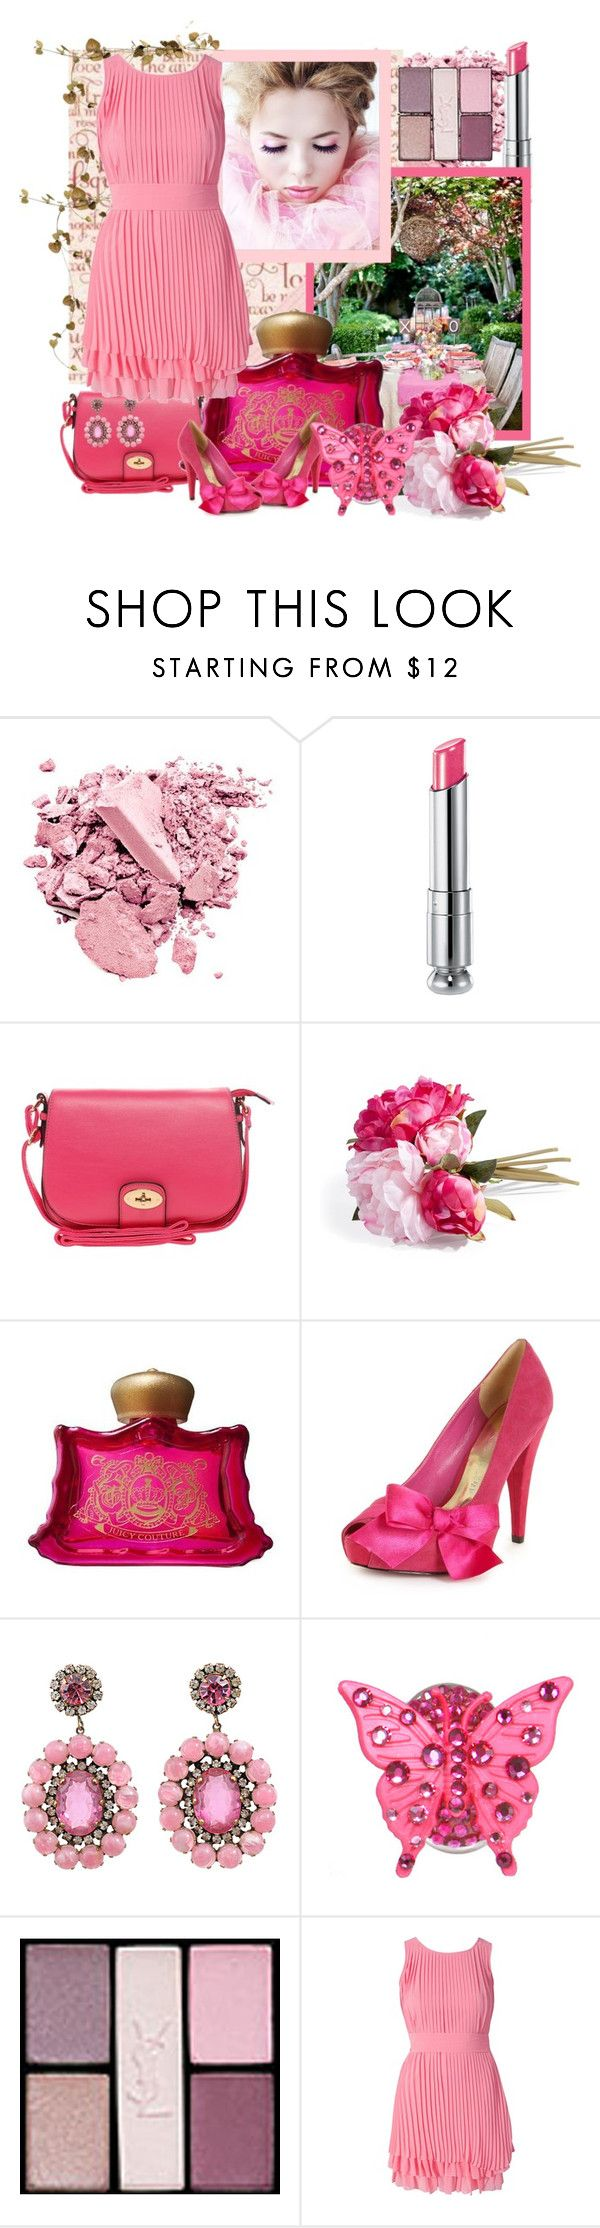 """""""Sweet Pink Peony"""" by pixidreams ❤ liked on Polyvore featuring Christian Dior, ALDO, Juicy Couture, Paris Hilton, Kenneth Jay Lane, Tarina Tarantino, Yves Saint Laurent, Lipsy, sixties earrings and shoulder bag"""